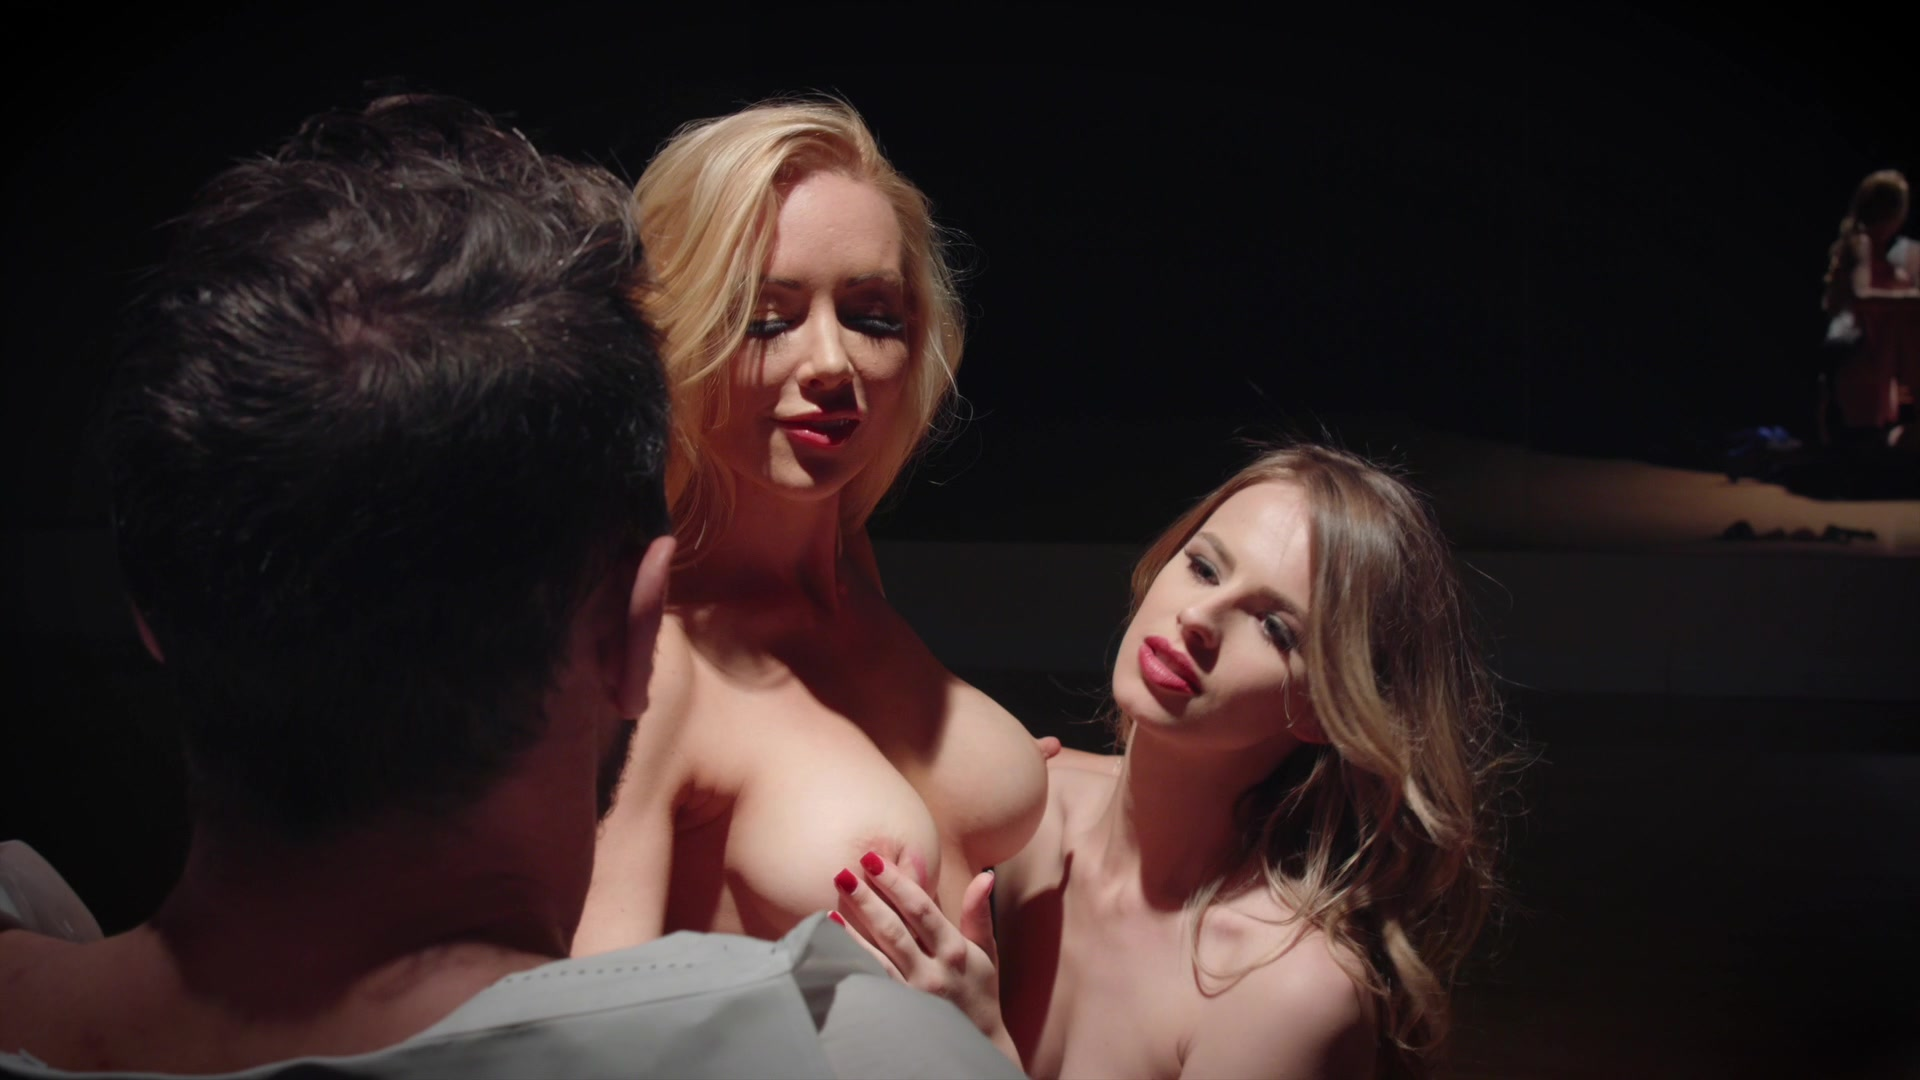 Scene with Kayden Kross and Jillian Janson - image 12 out of 20